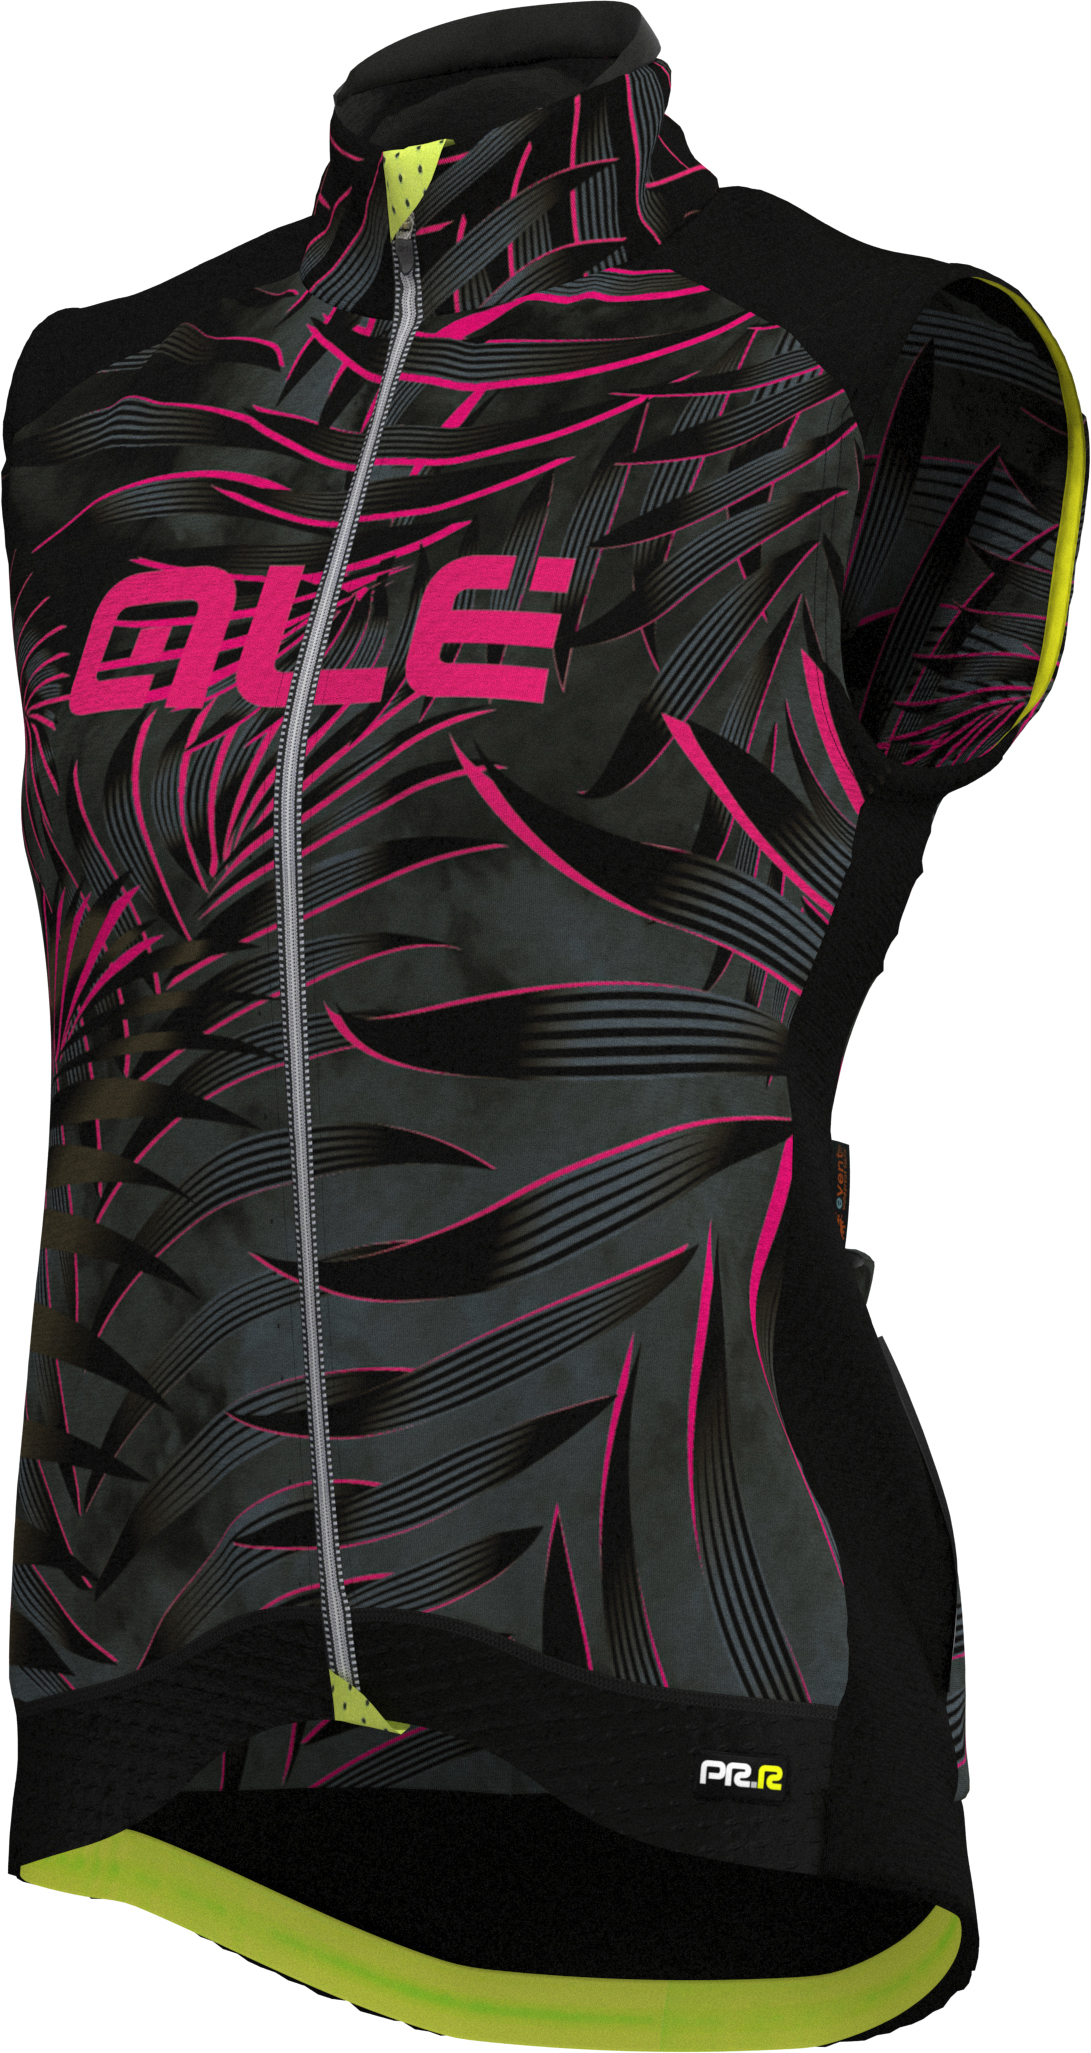 Alé - Thermo | cykelvest